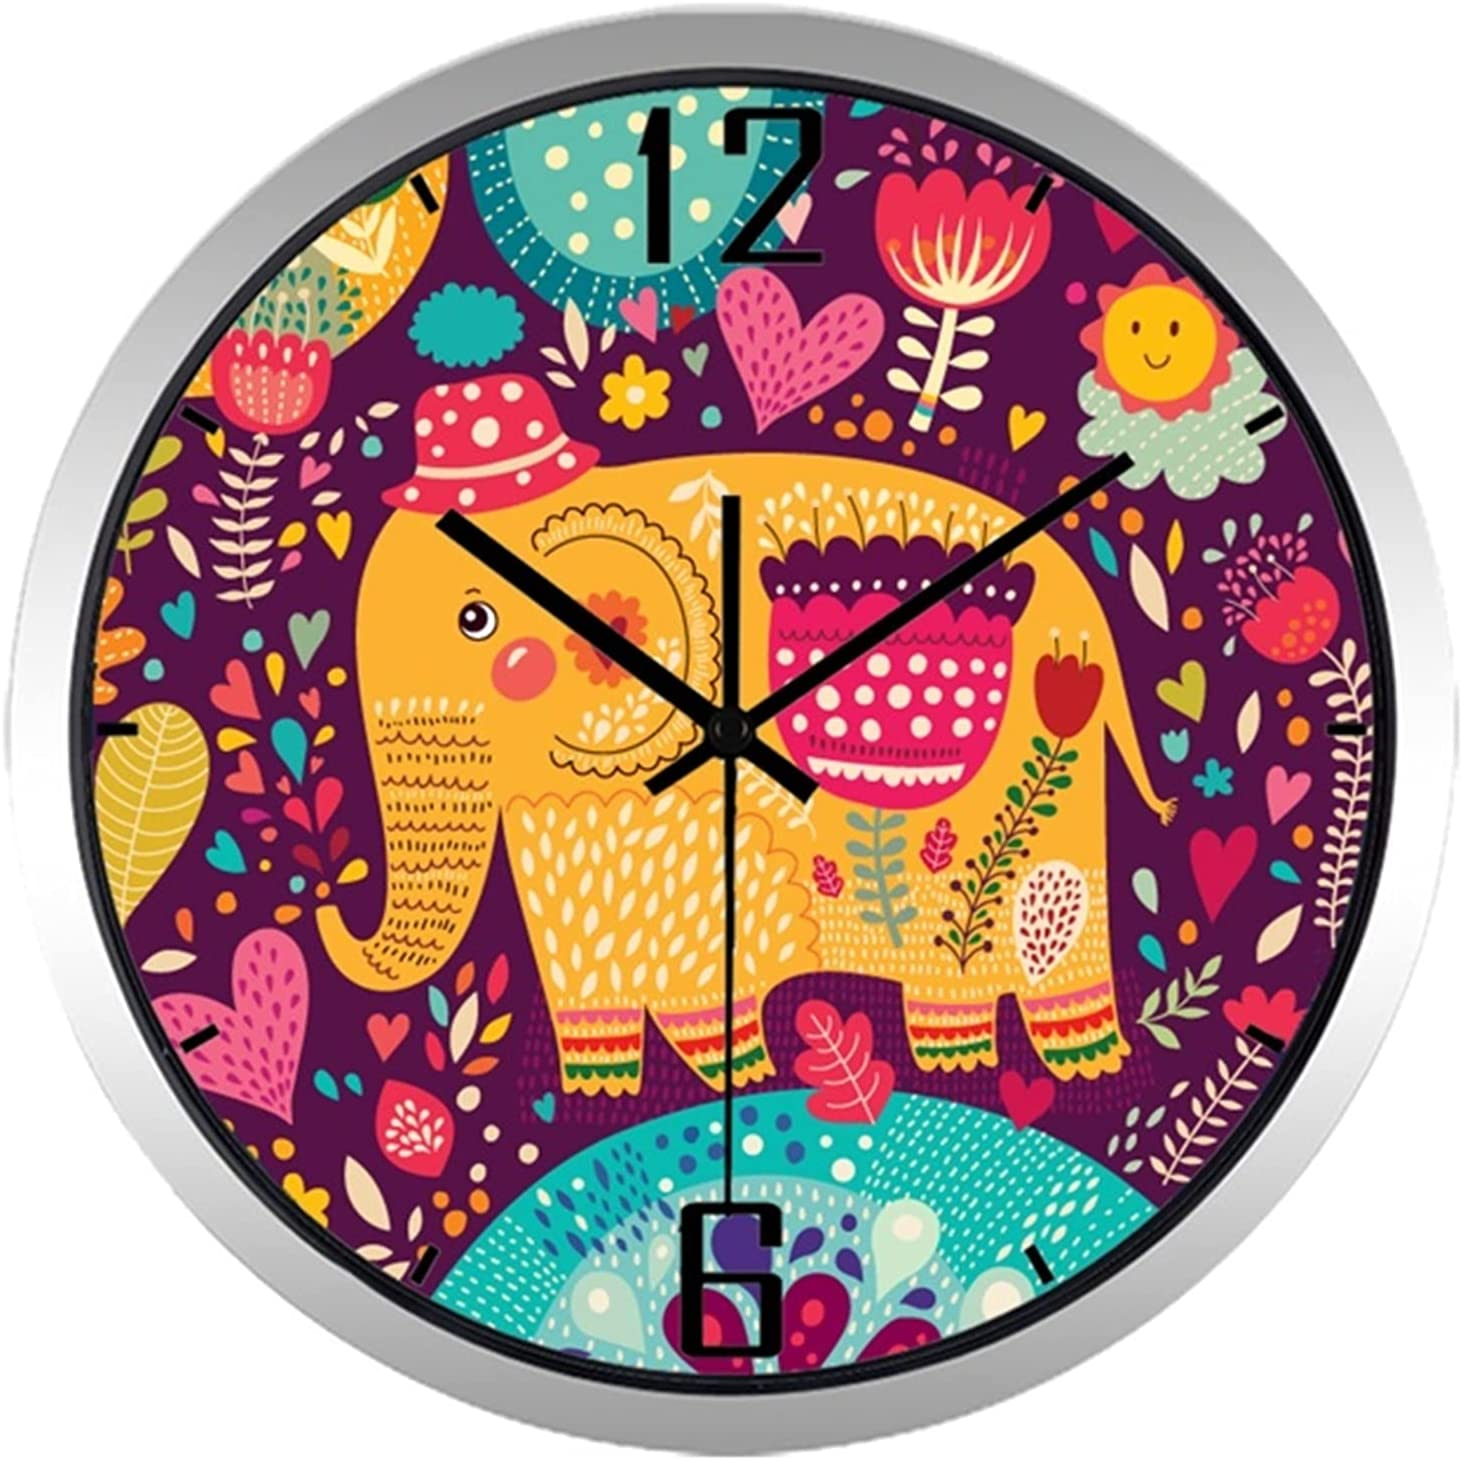 Limited time for free shipping YSYSPJM Wall Clock 10inch Children Room Bedro Credence Kid